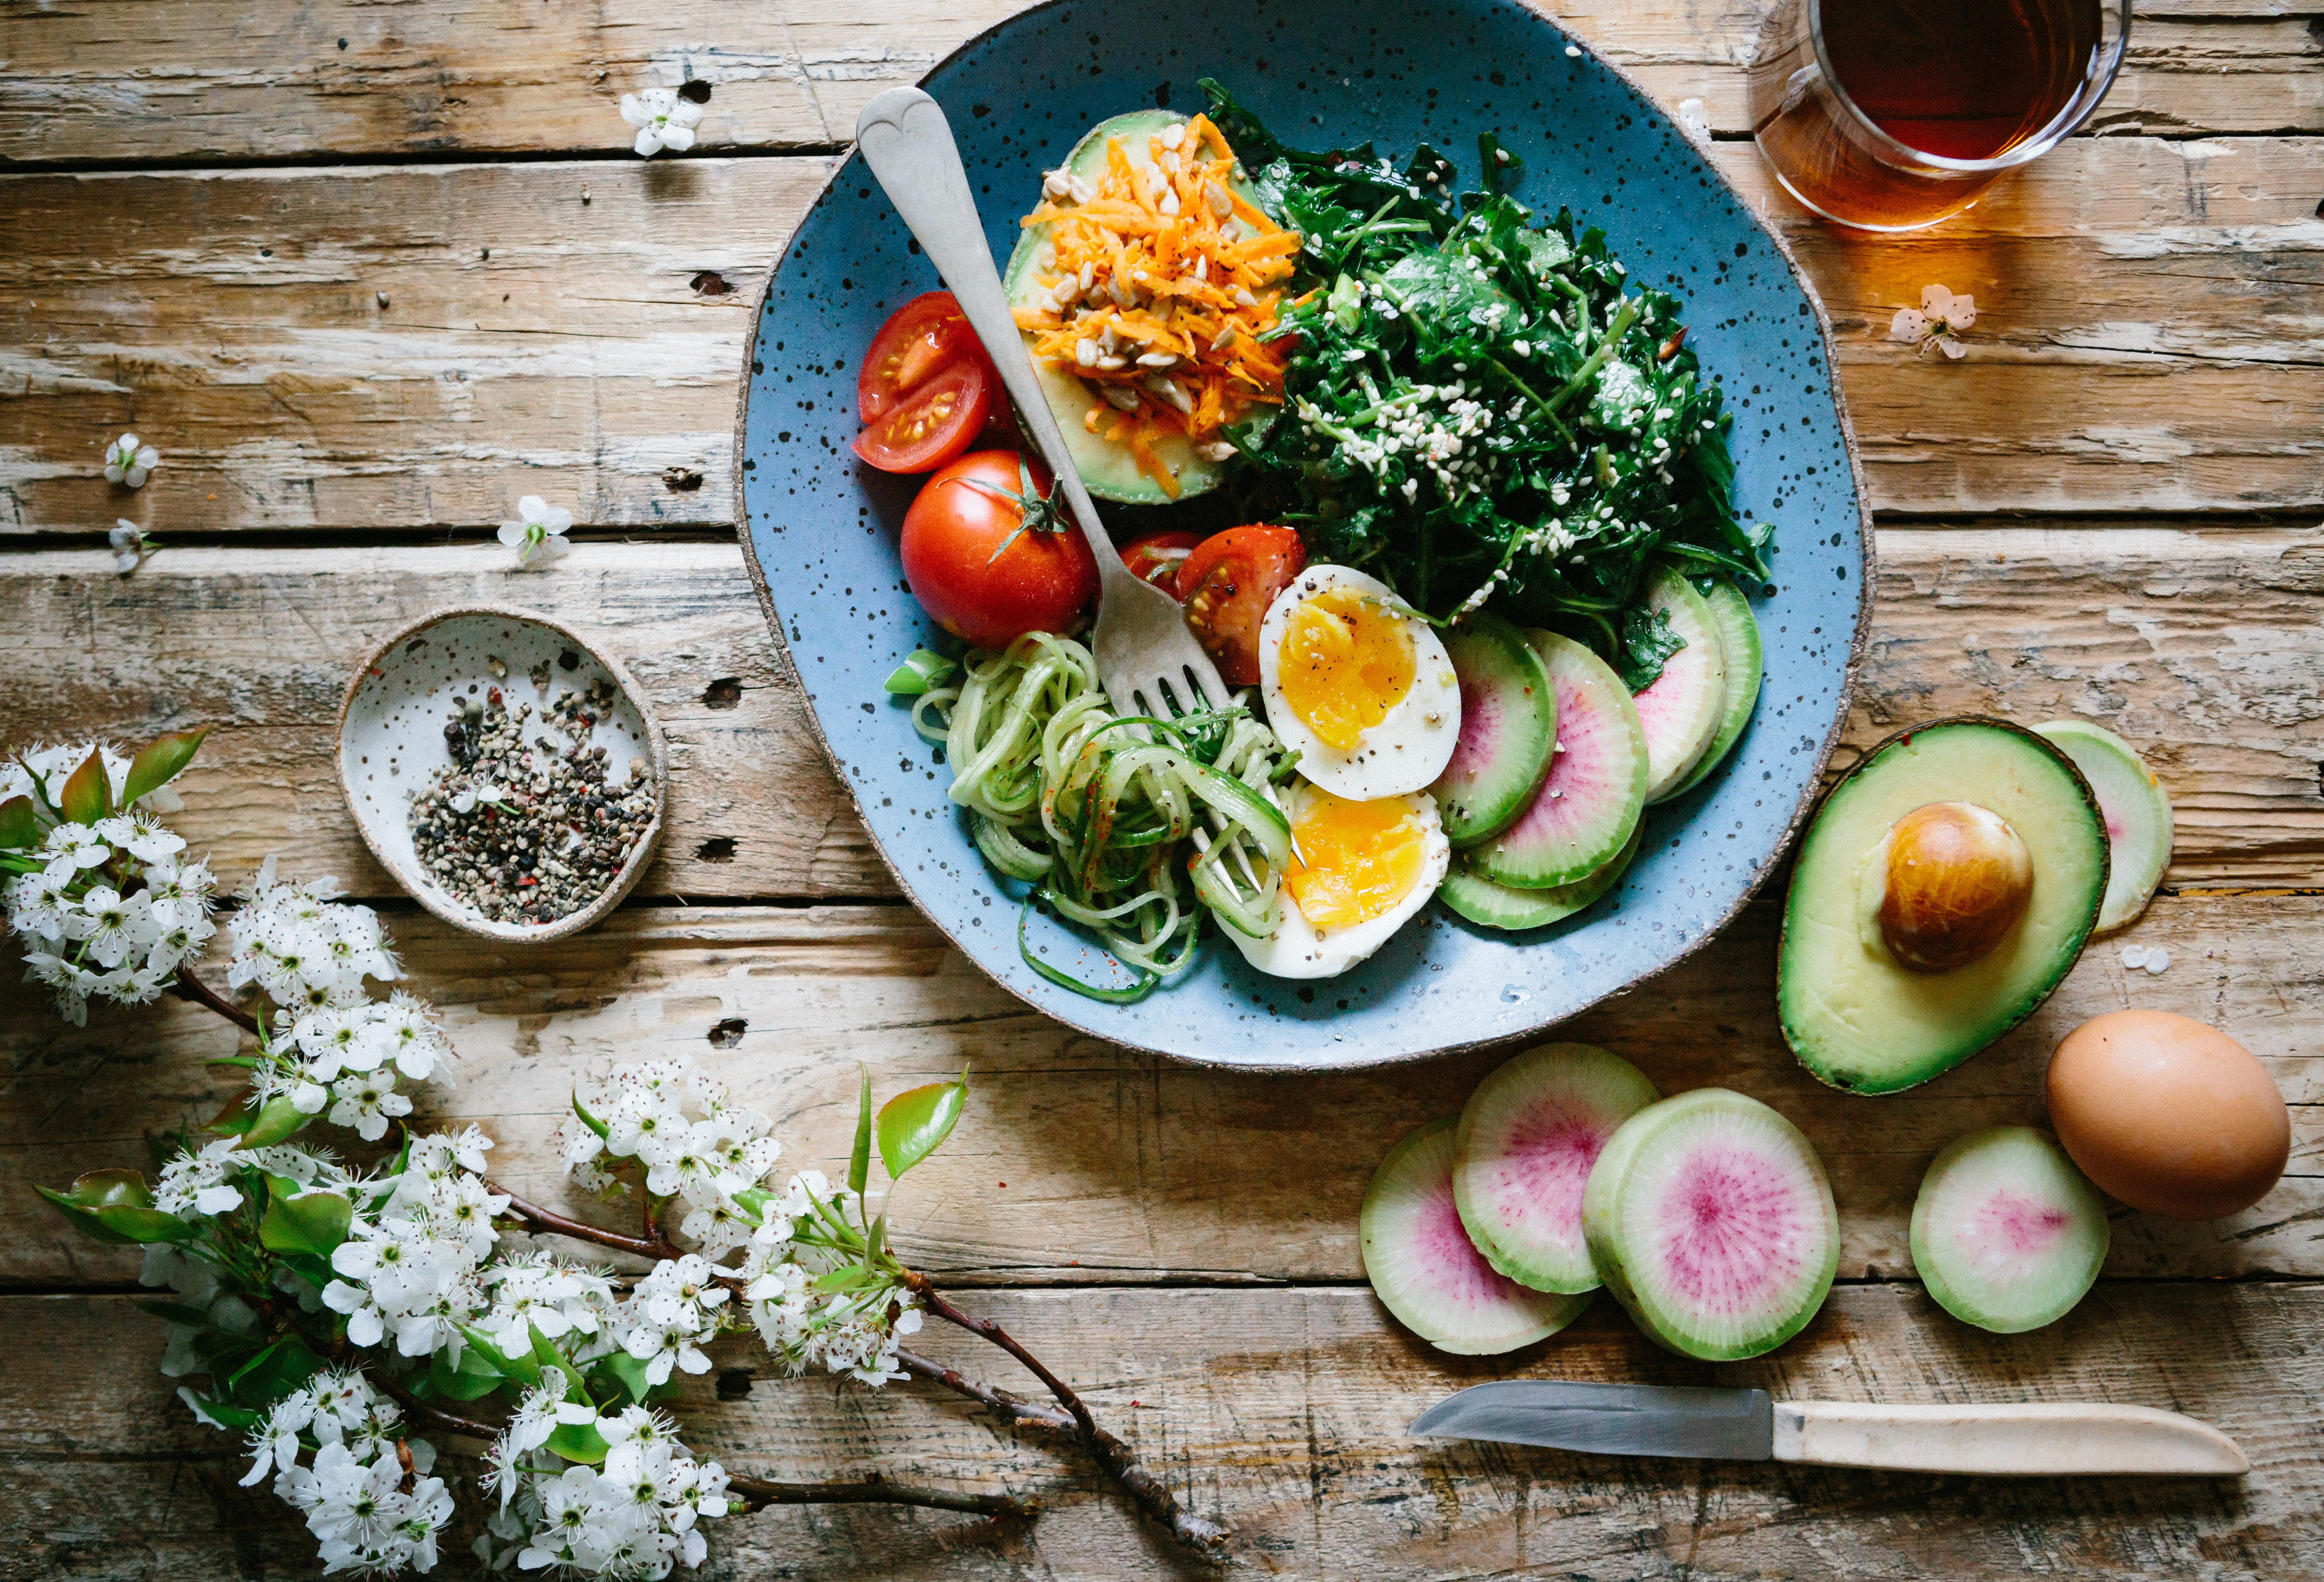 Healthy salad and flowers on wooden table